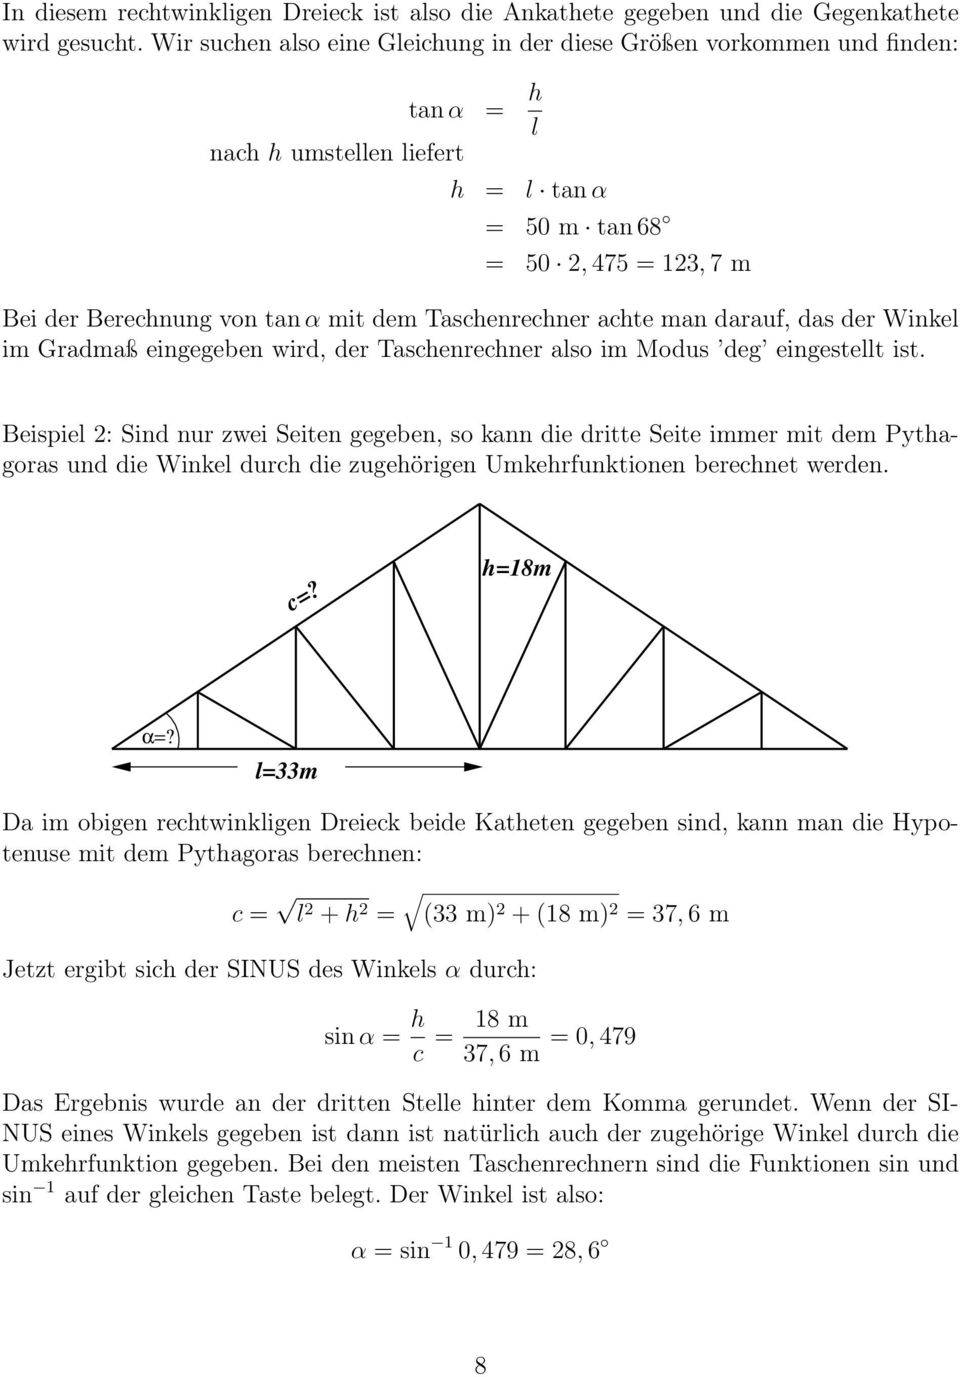 Winkelfunktionen. Dr. H. Macholdt. 21. September PDF